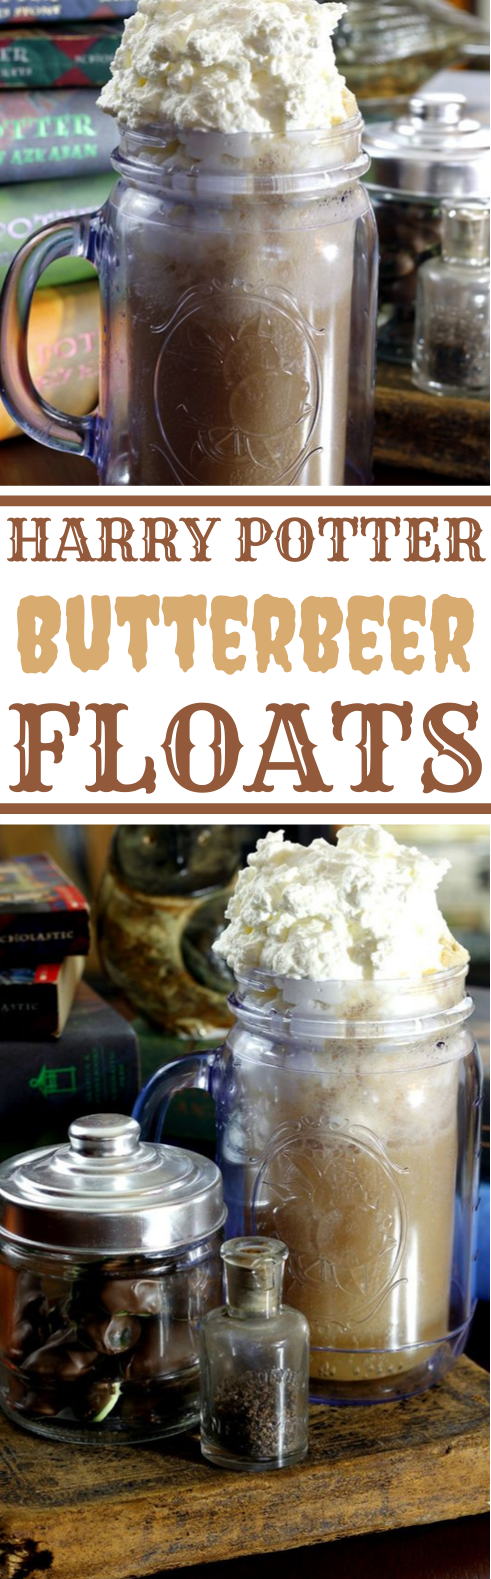 Homemade Butterbeer Floats #drink #recipe #nonalcohol #fall #party